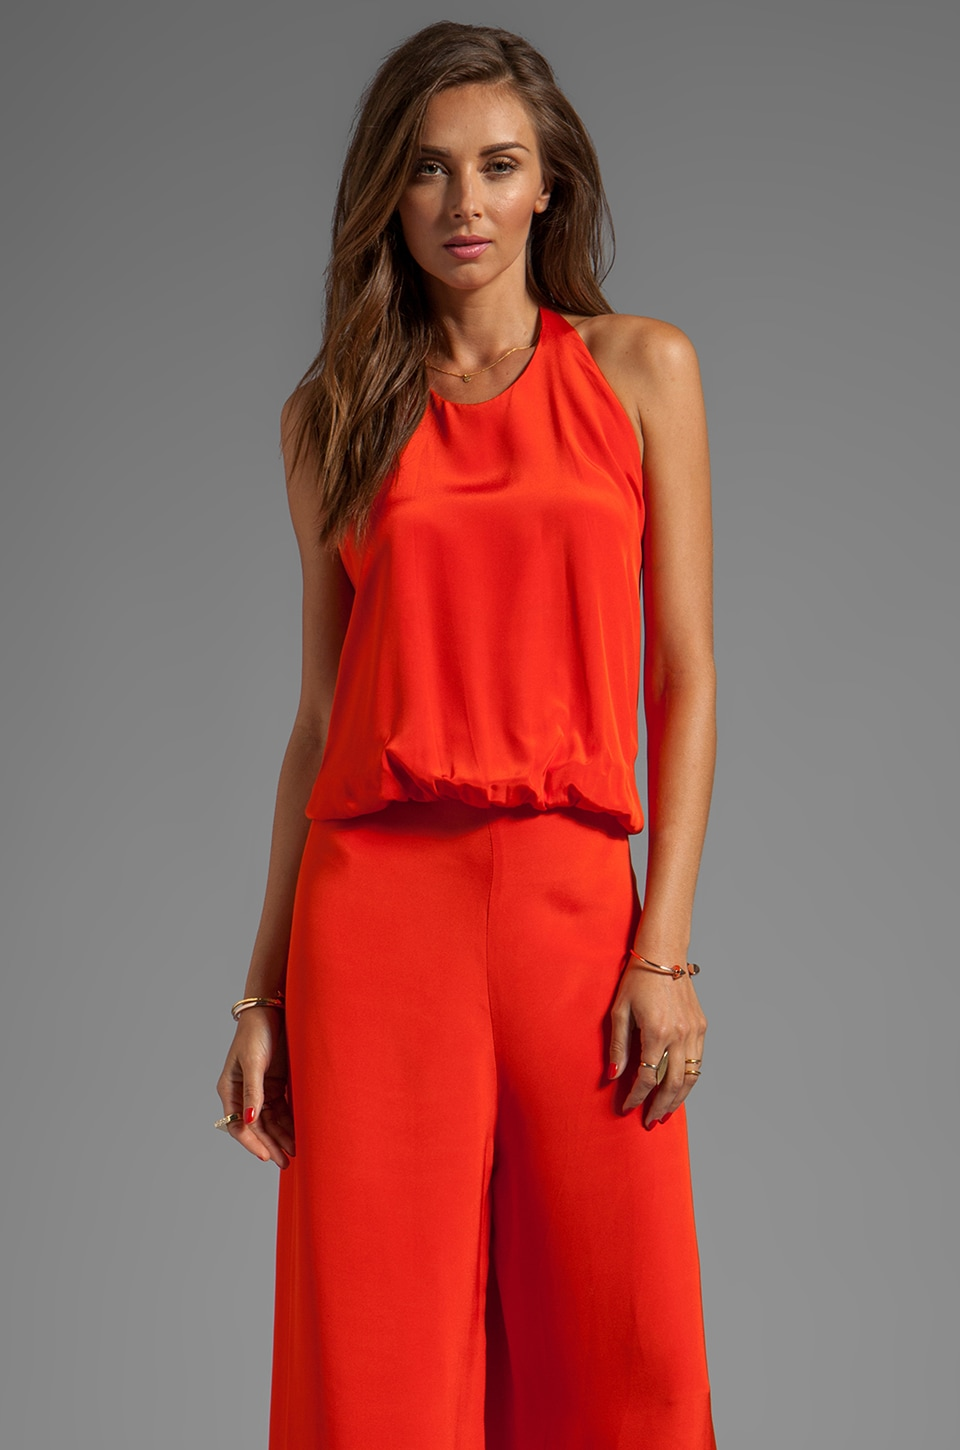 Alexis Cody Halter Jumpsuit in Red Orange